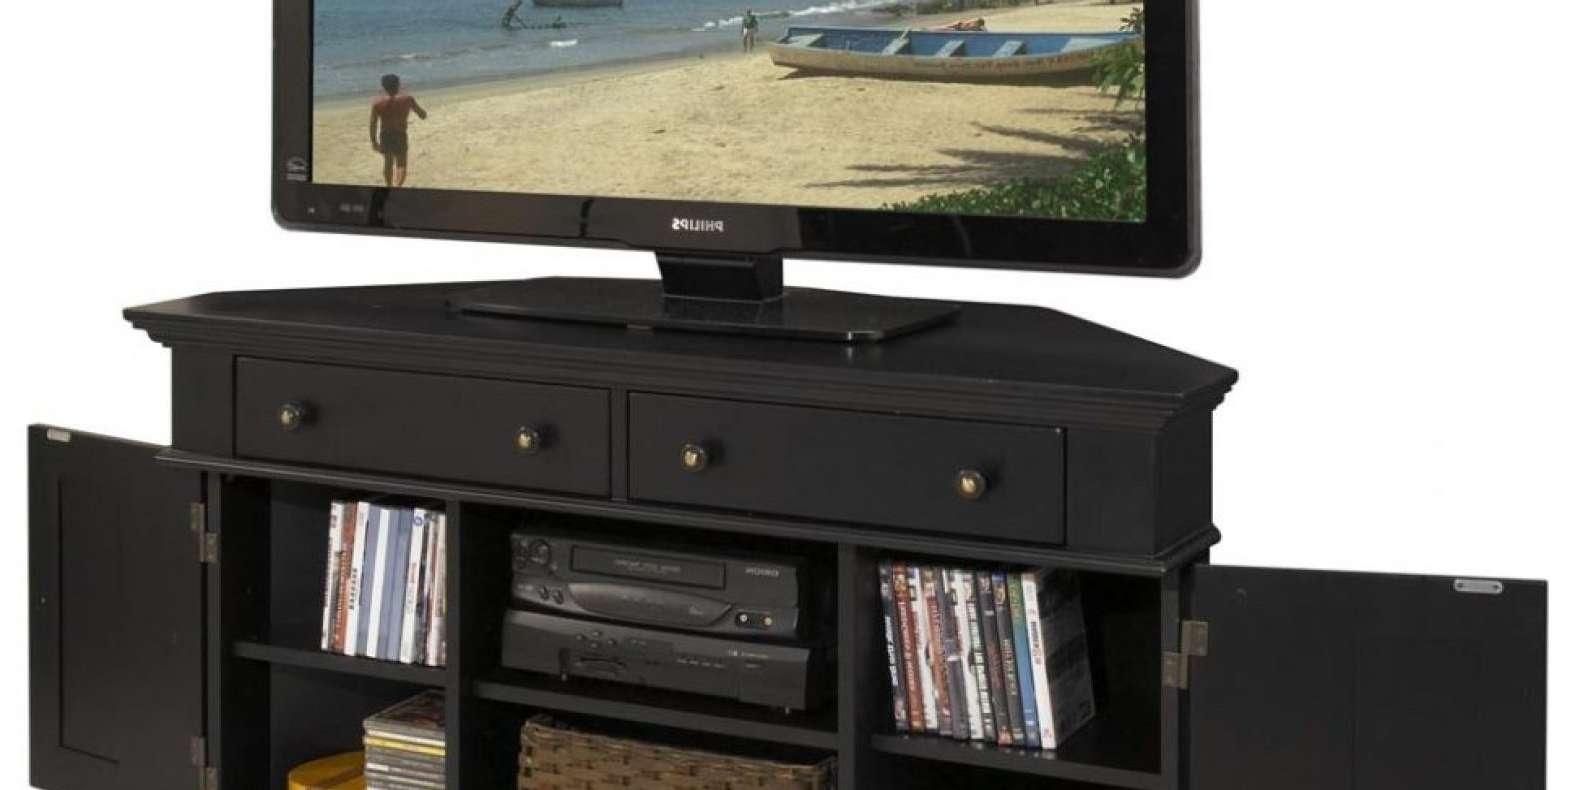 Mesmerize Slimline Tv Stand On Wheels Tags : Slimline Tv Stands Regarding Corner Tv Stands 46 Inch Flat Screen (View 11 of 15)